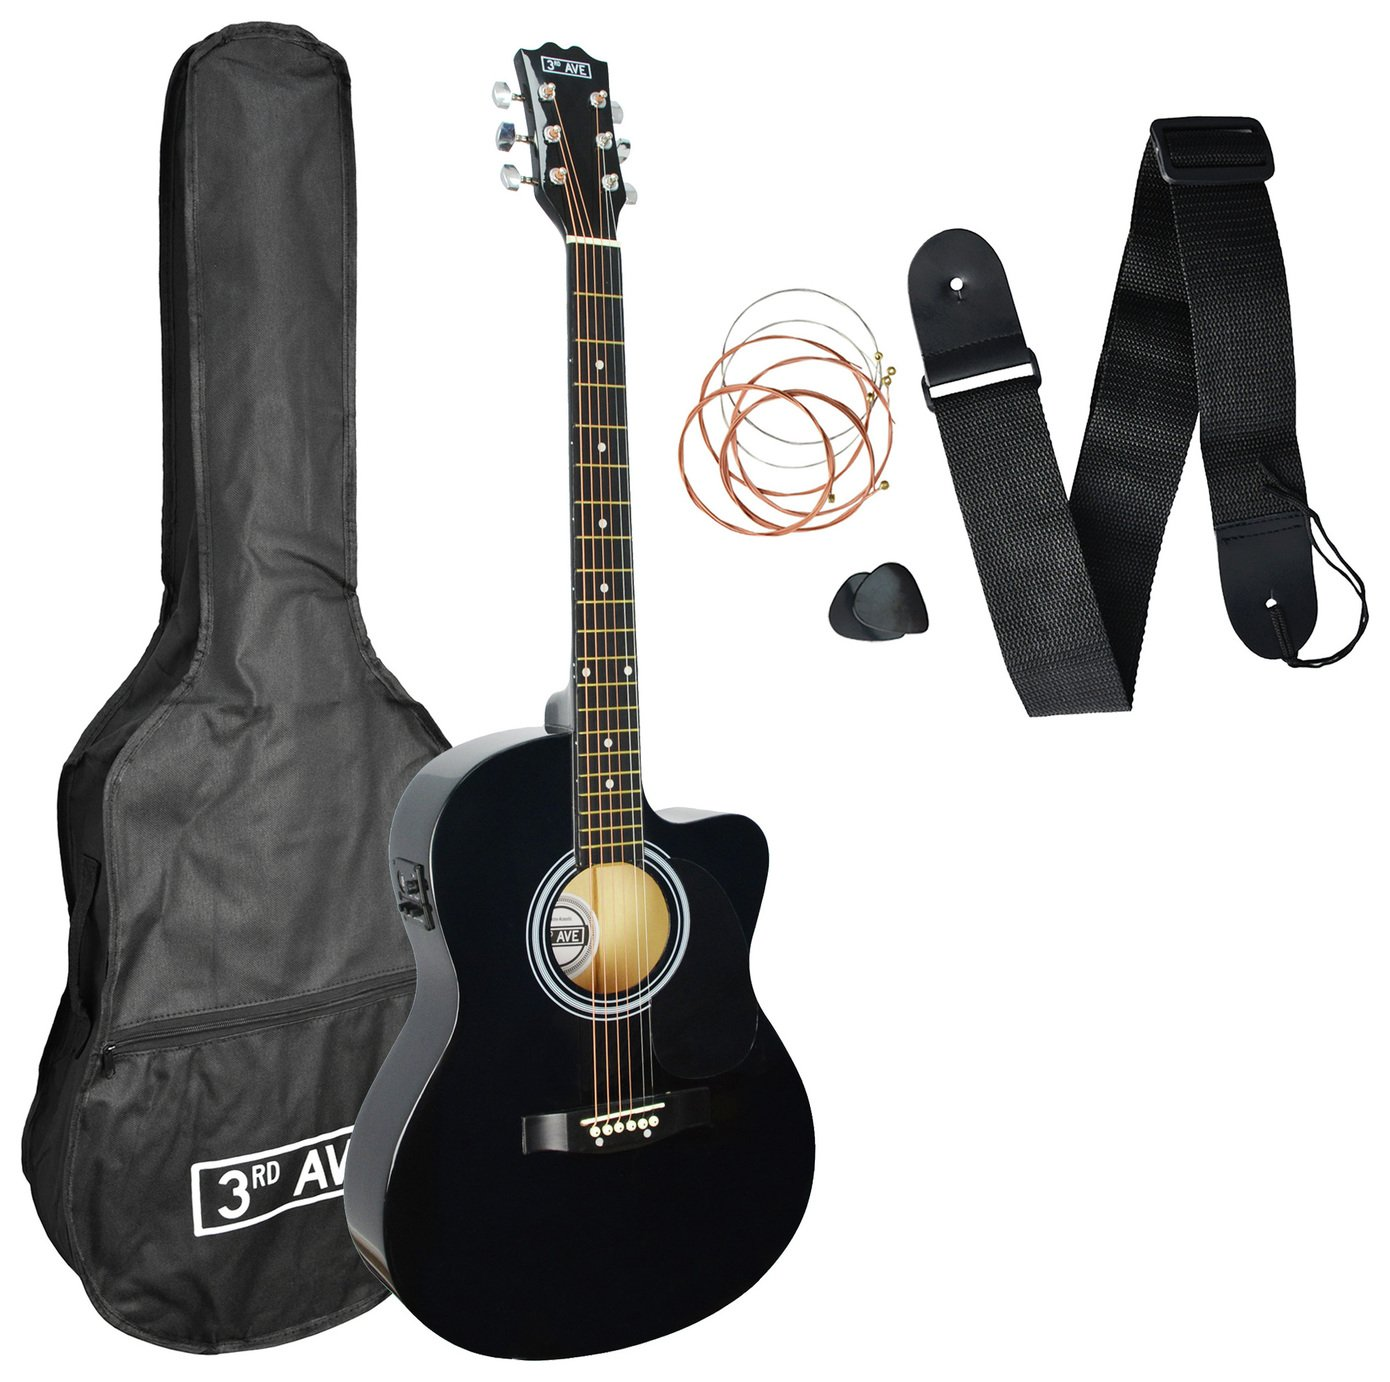 3rd Avenue Full Size Electro Acoustic Guitar and Accessories